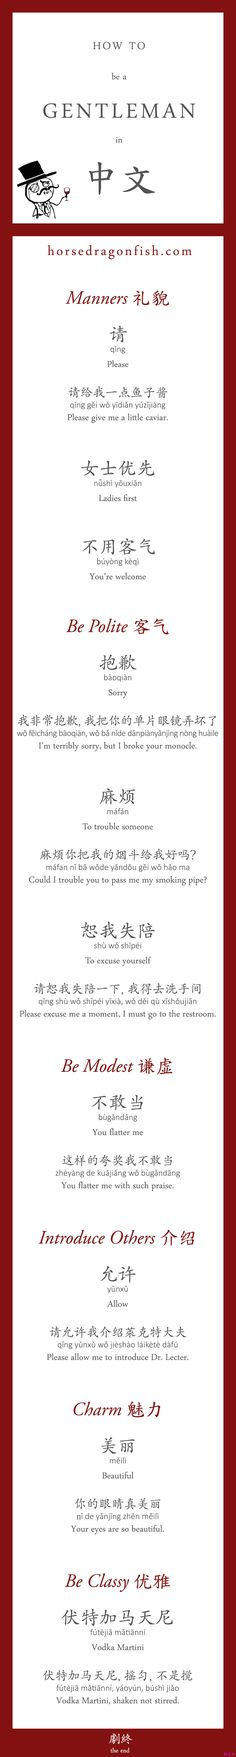 How to be a gentleman in Chinese. A good site about learning Chinese with nice drawings.